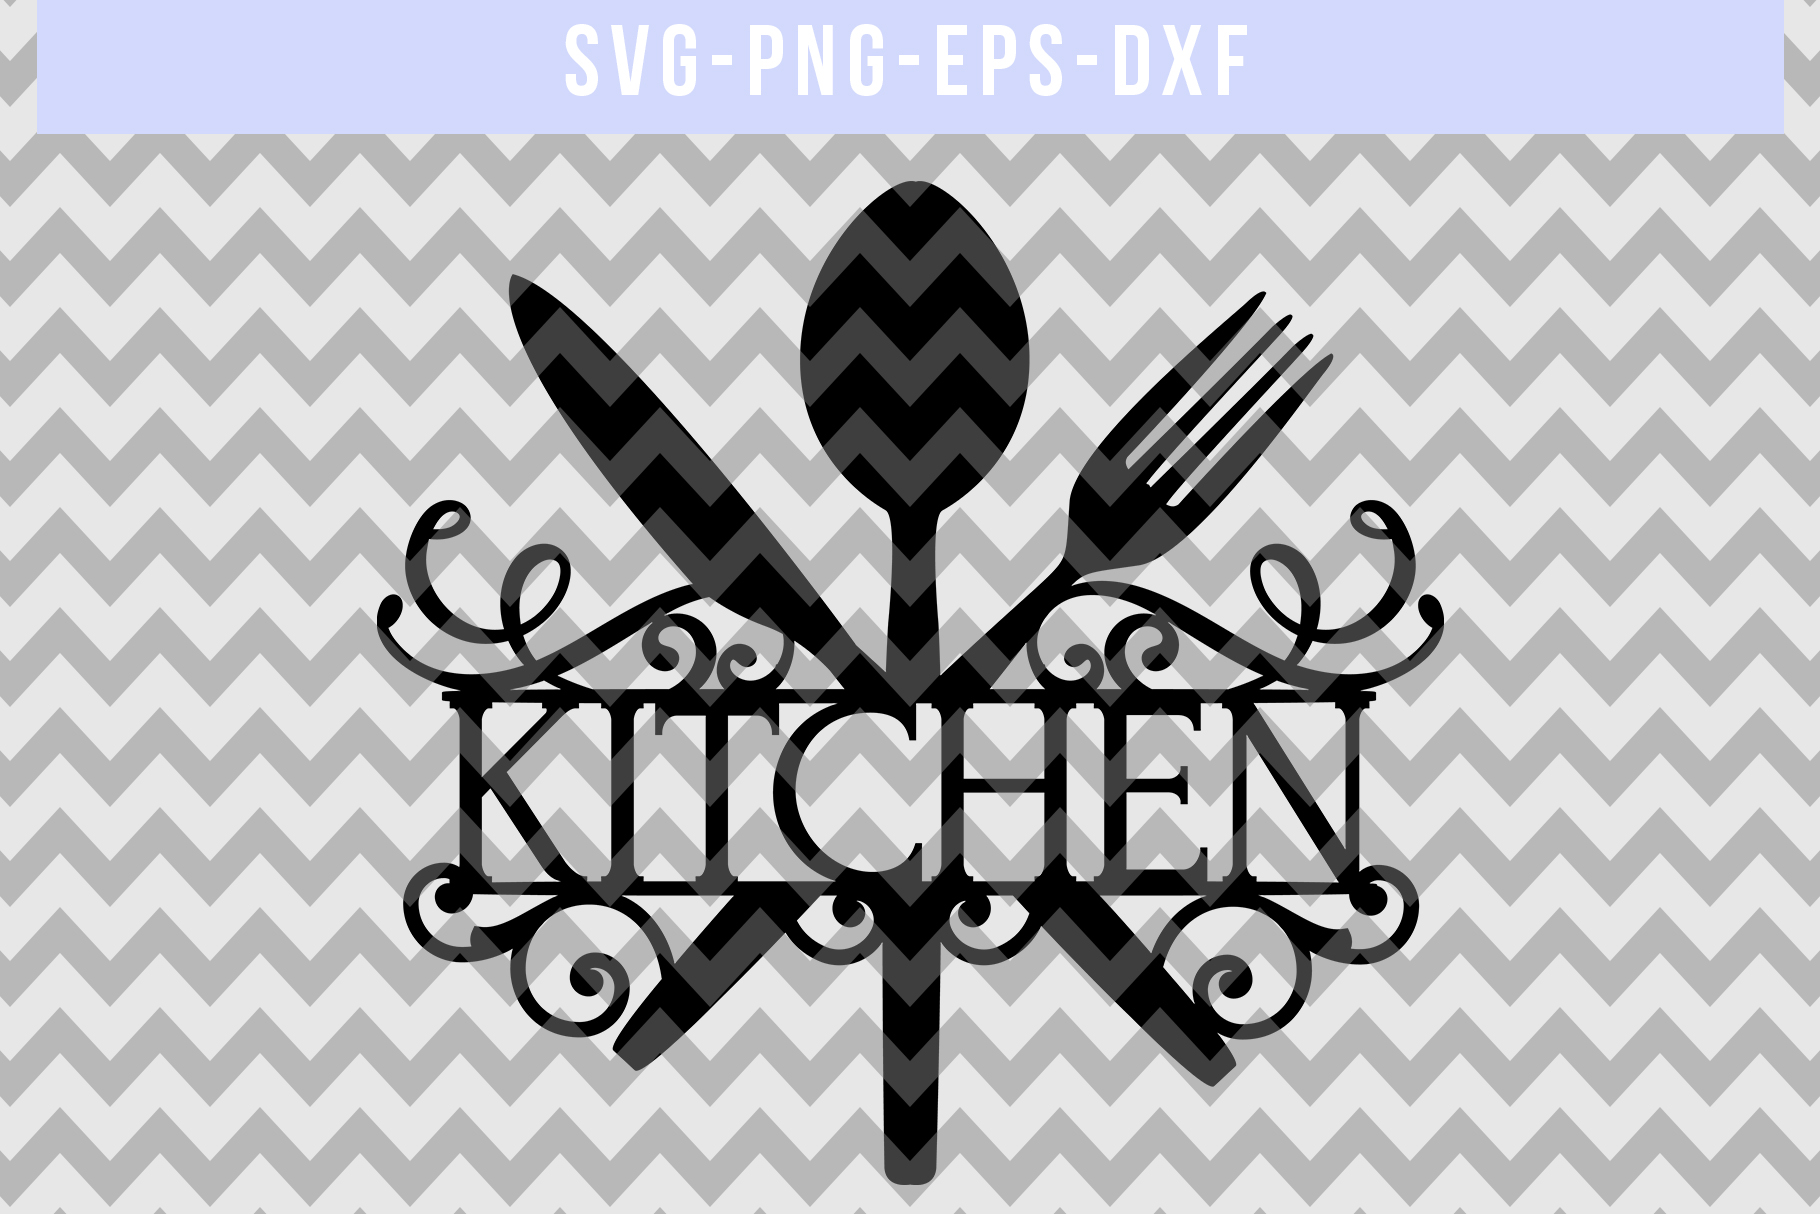 kitchen svg cut file kitchen sayings sign dxf eps png example image 4 - Kitchen Sayings